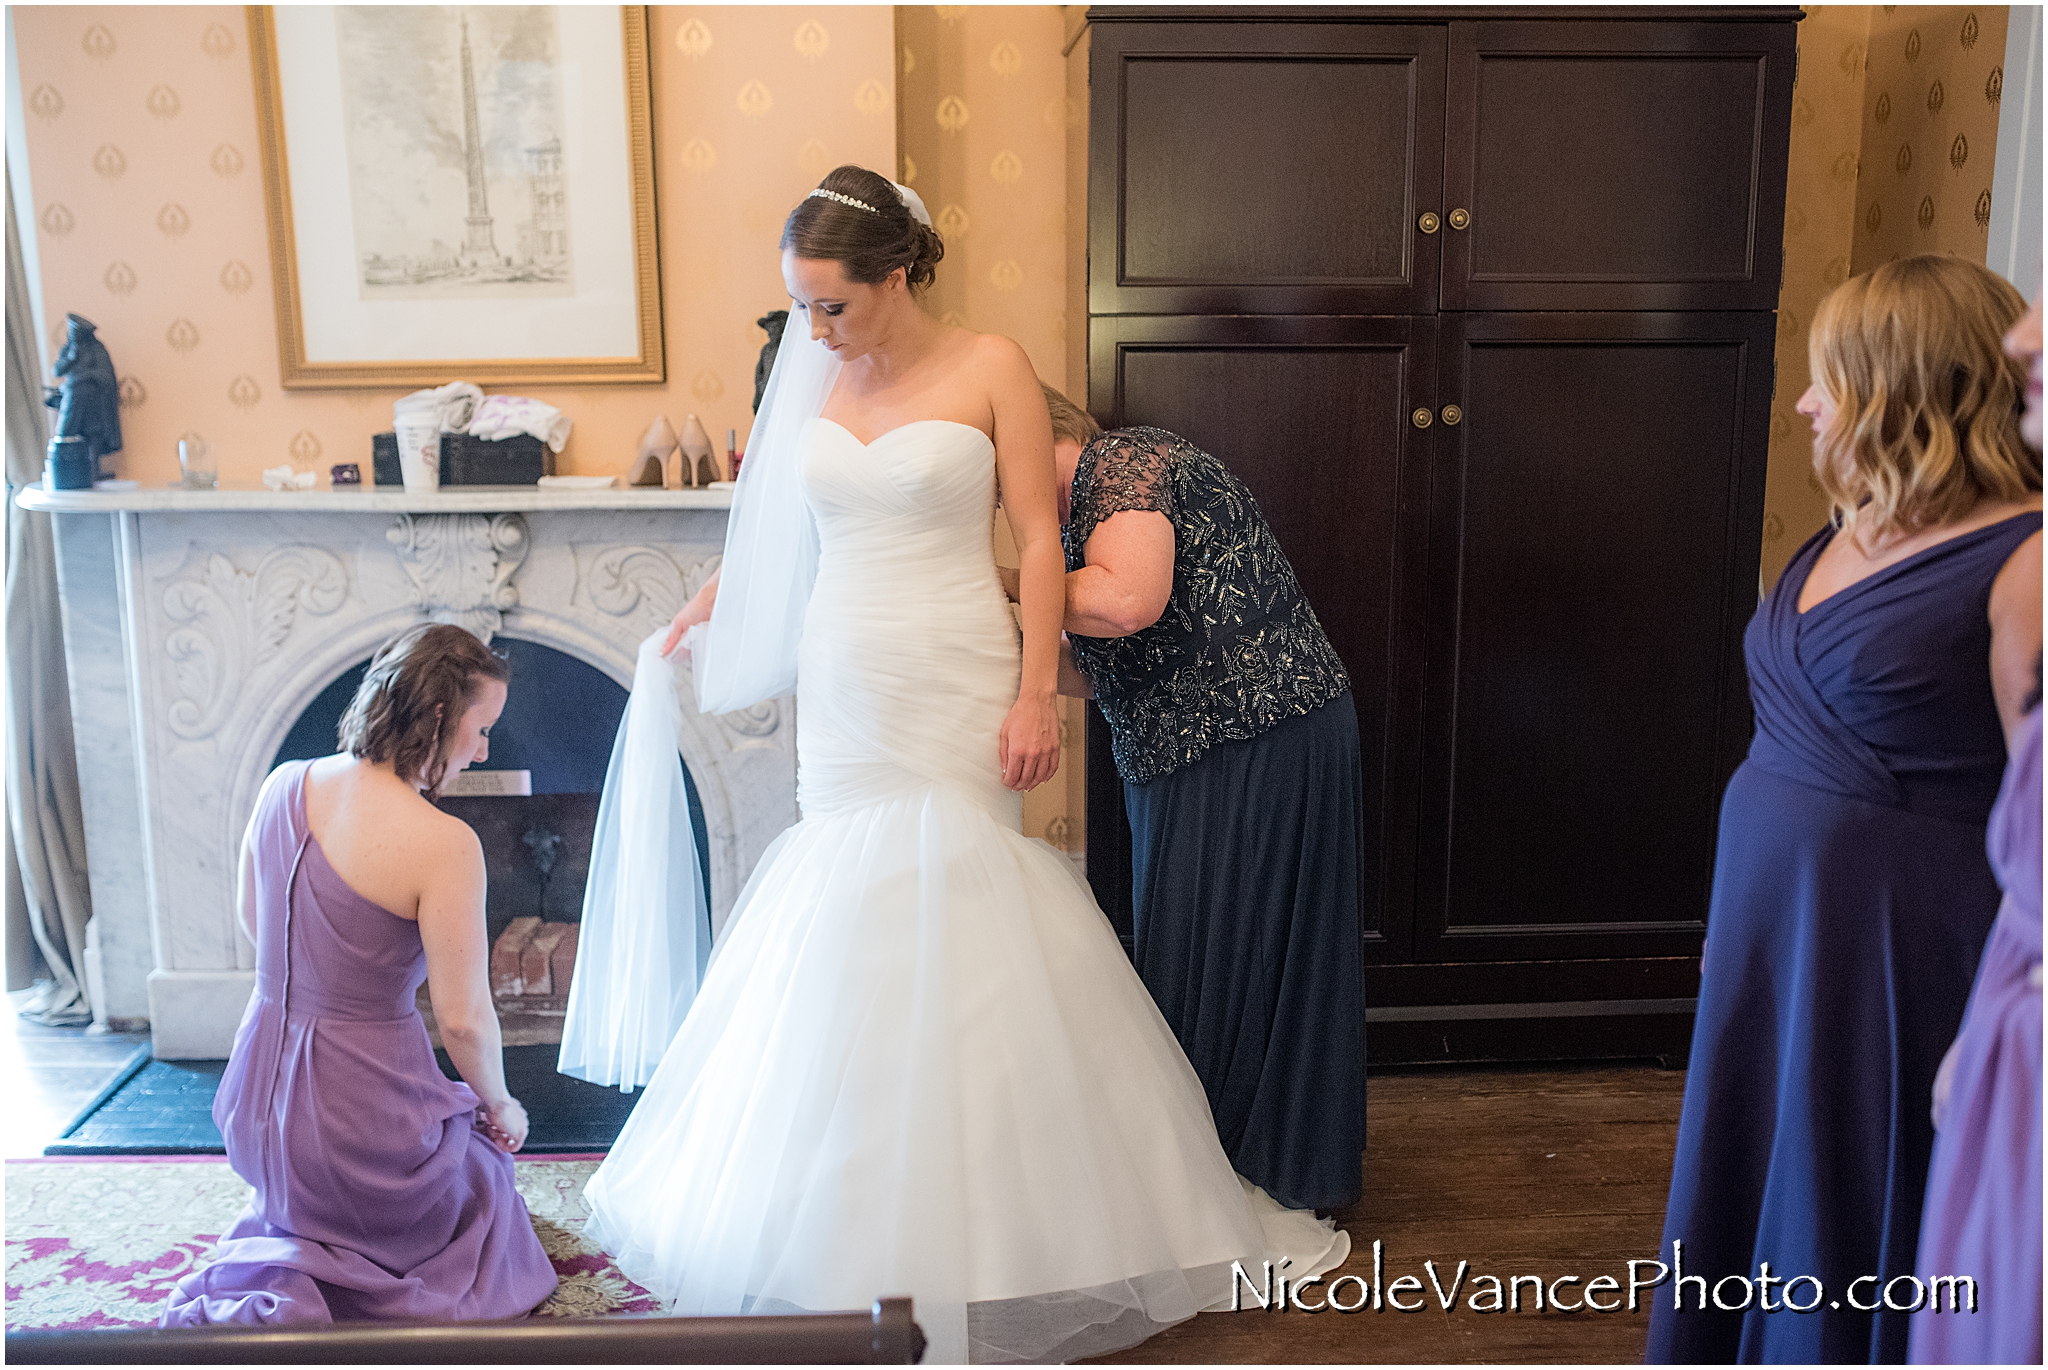 The bride's mom carefully fastens her buttons as she helps her daughter get ready at the Bridal Suite at the Linden Row Inn in Richmond, VA.